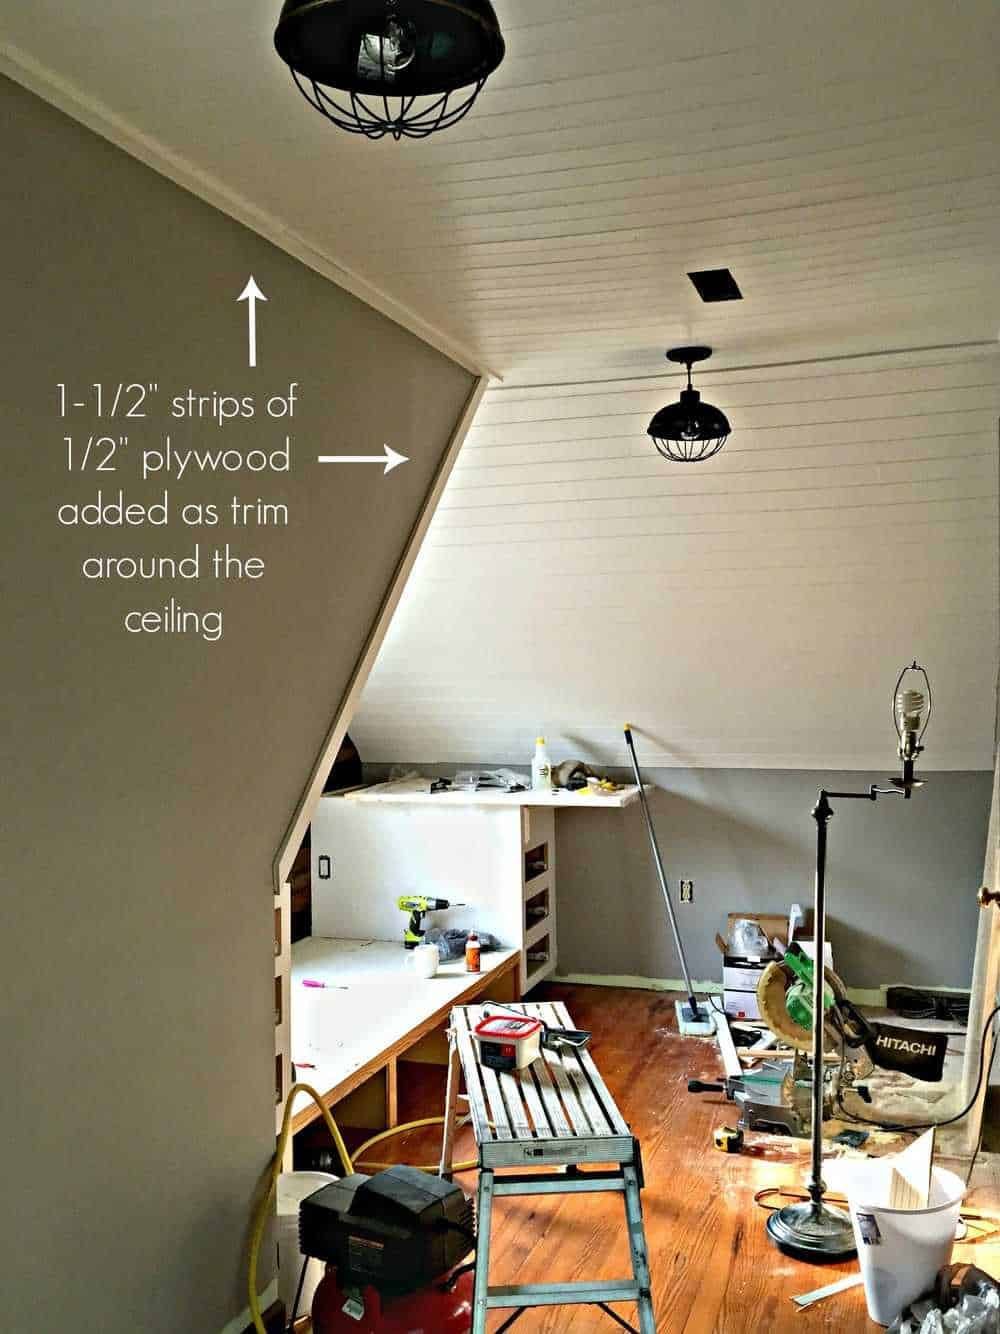 shiplap or planked ceiling tutorial